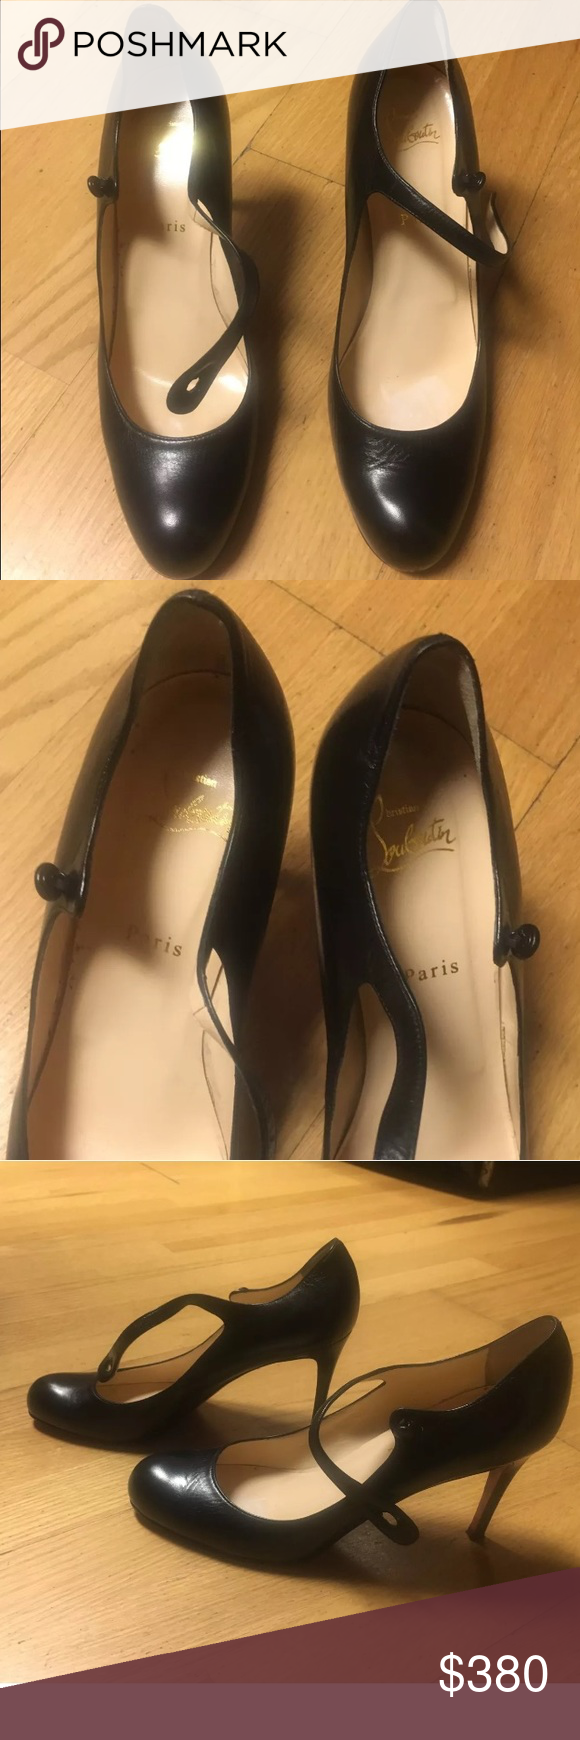 Mary Jane Christian louboutin Christian louboutin authentic Mary Jane style heels. Size 41, without box. They belong to my mom who can't wear heels any longer due to having a hip replacement. She wears a 10/10.5 us Christian Louboutin Shoes Heels